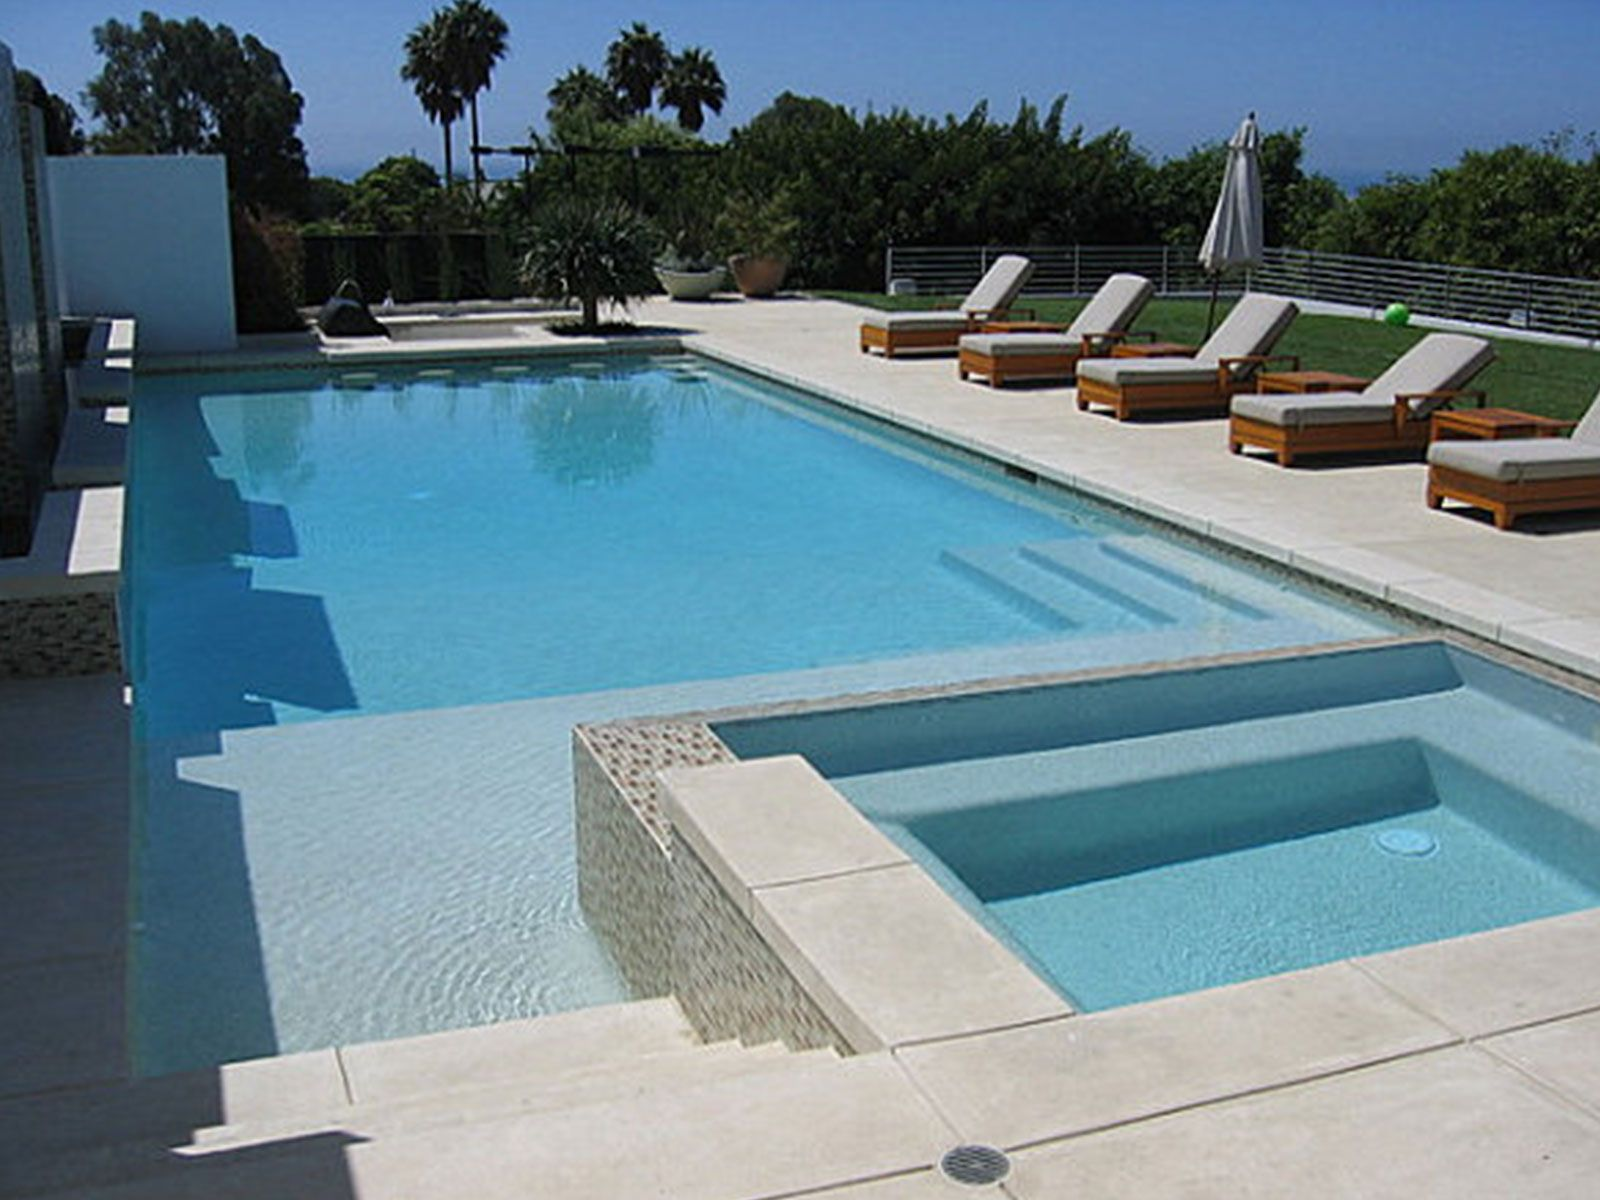 Simple swimming pool design image modern creative swimming for Pool design basics